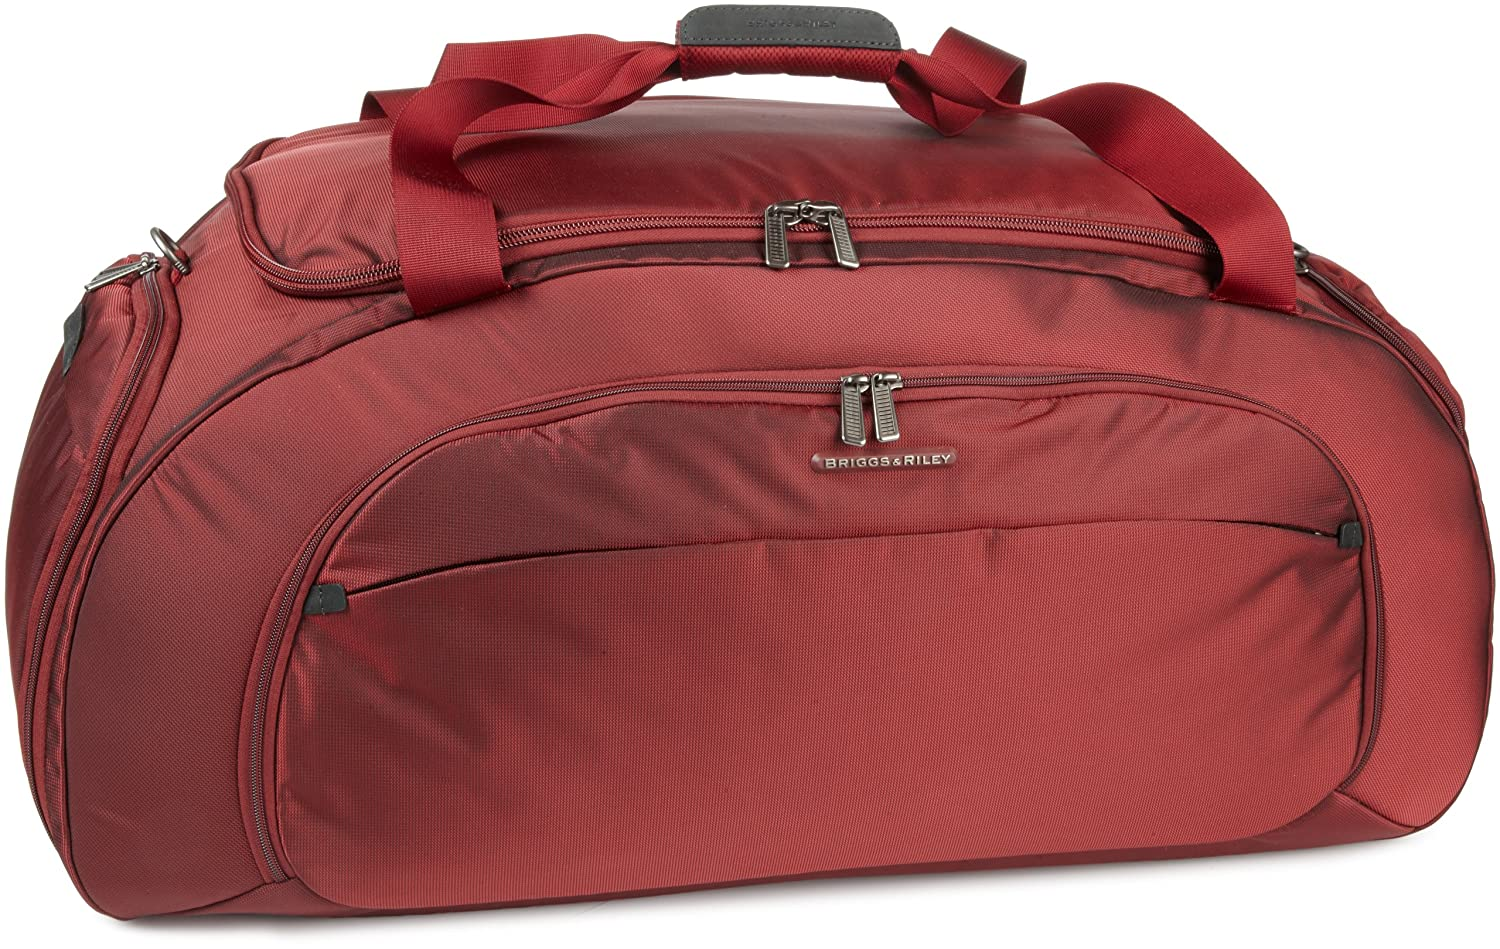 Briggs /& Riley  Transcend Duffle Bag,Sunset,16x32x16 inch